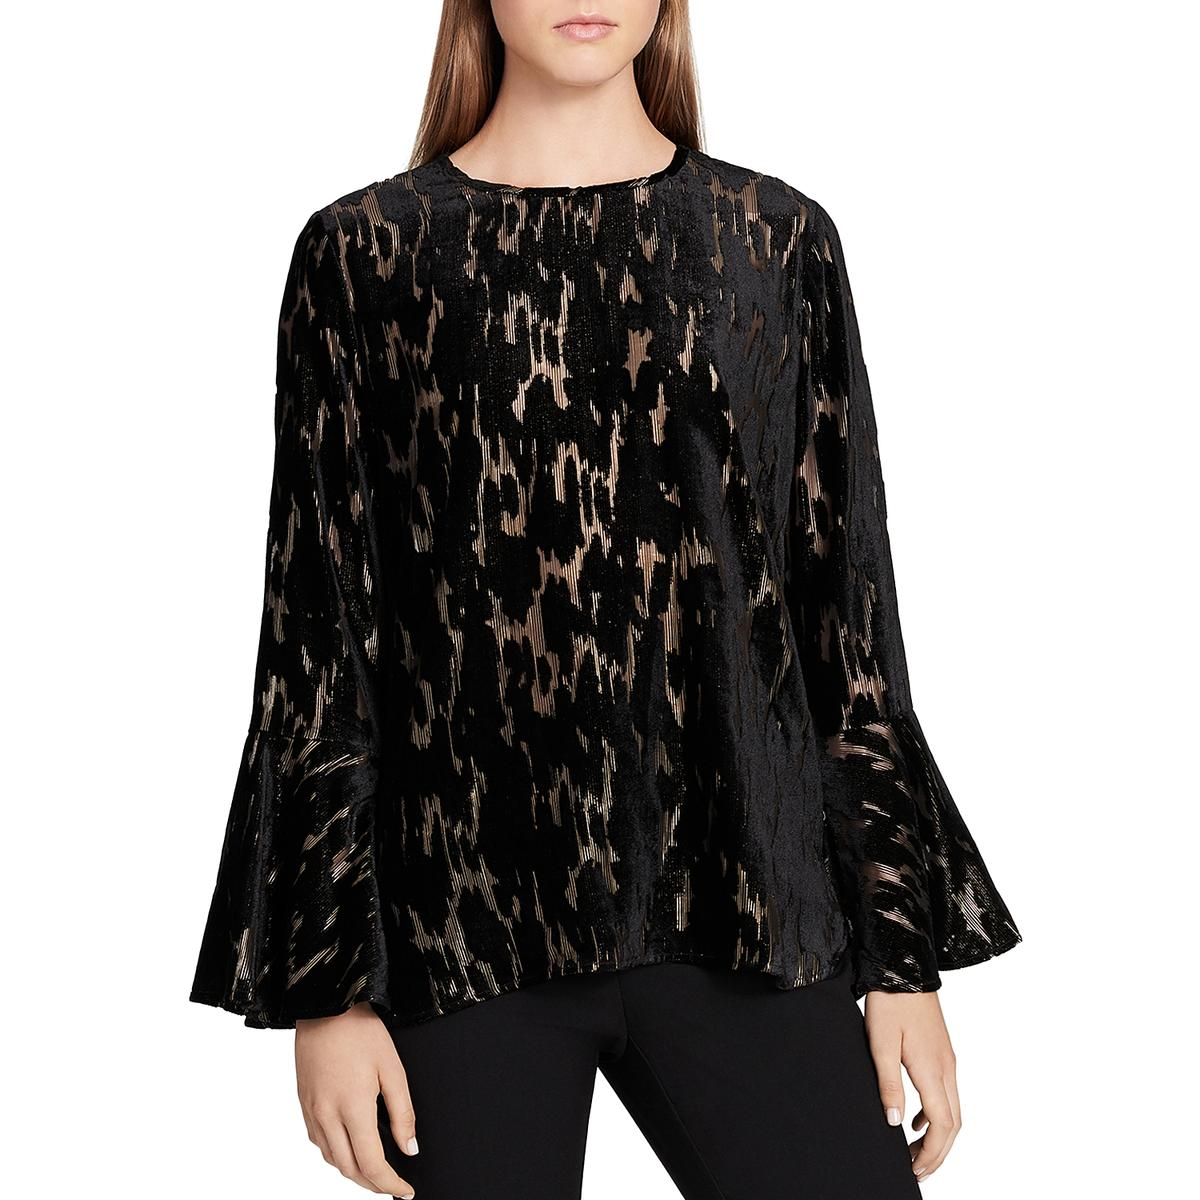 2ccb926d81ef92 Details about Calvin Klein Womens Metallic Bell Sleeves Flocked Dress Top  Blouse BHFO 0842